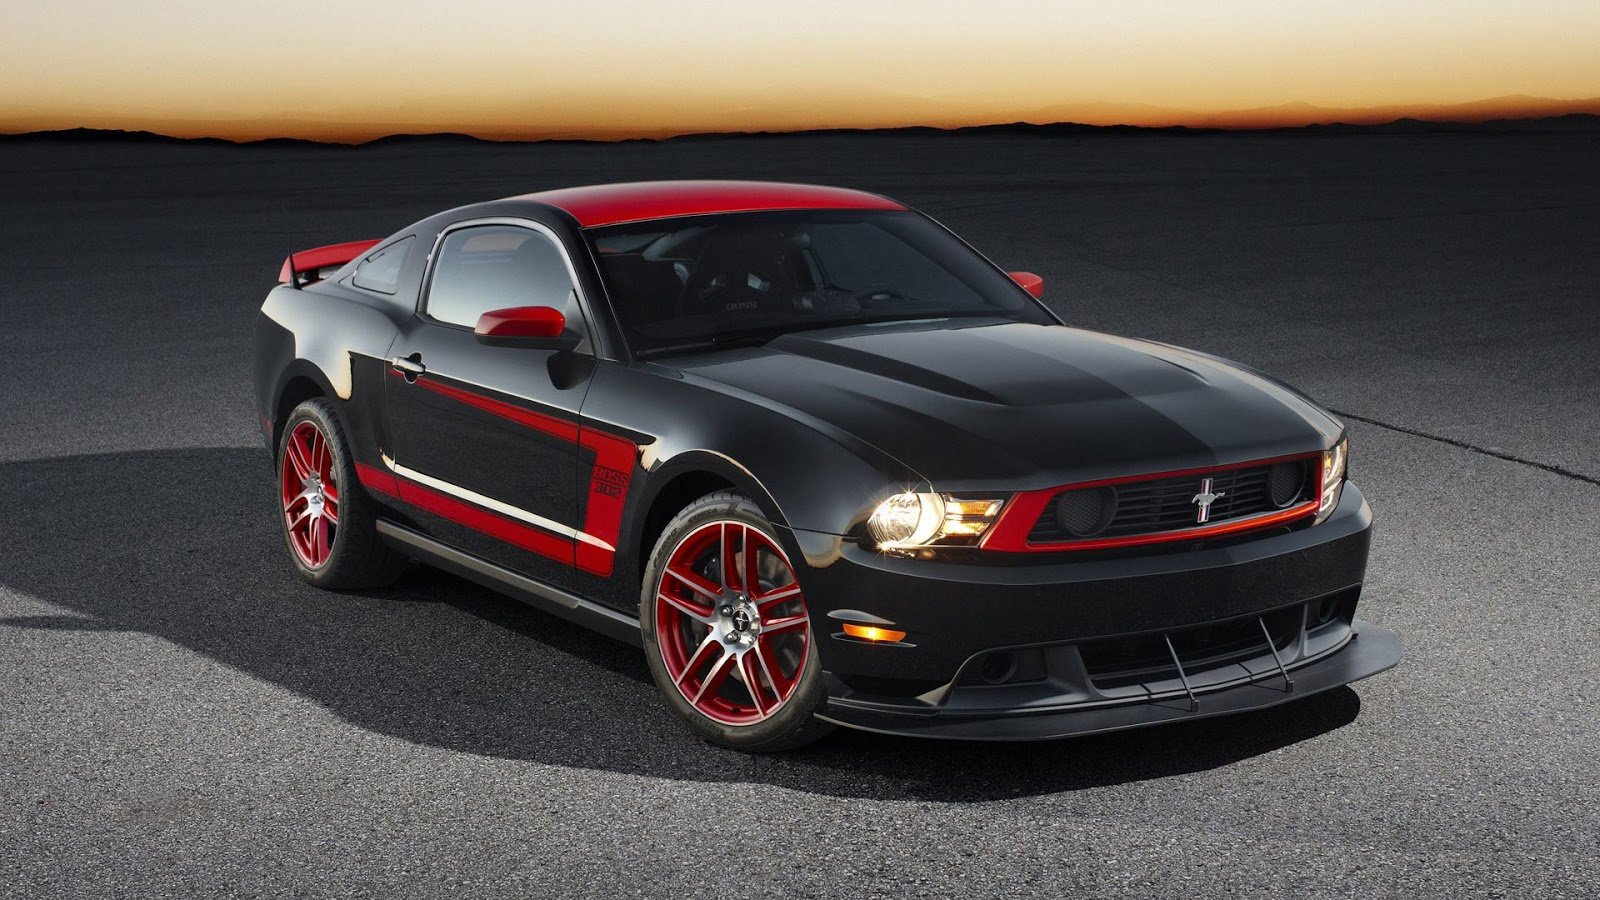 super power, ford mustang - Dremzo Cars